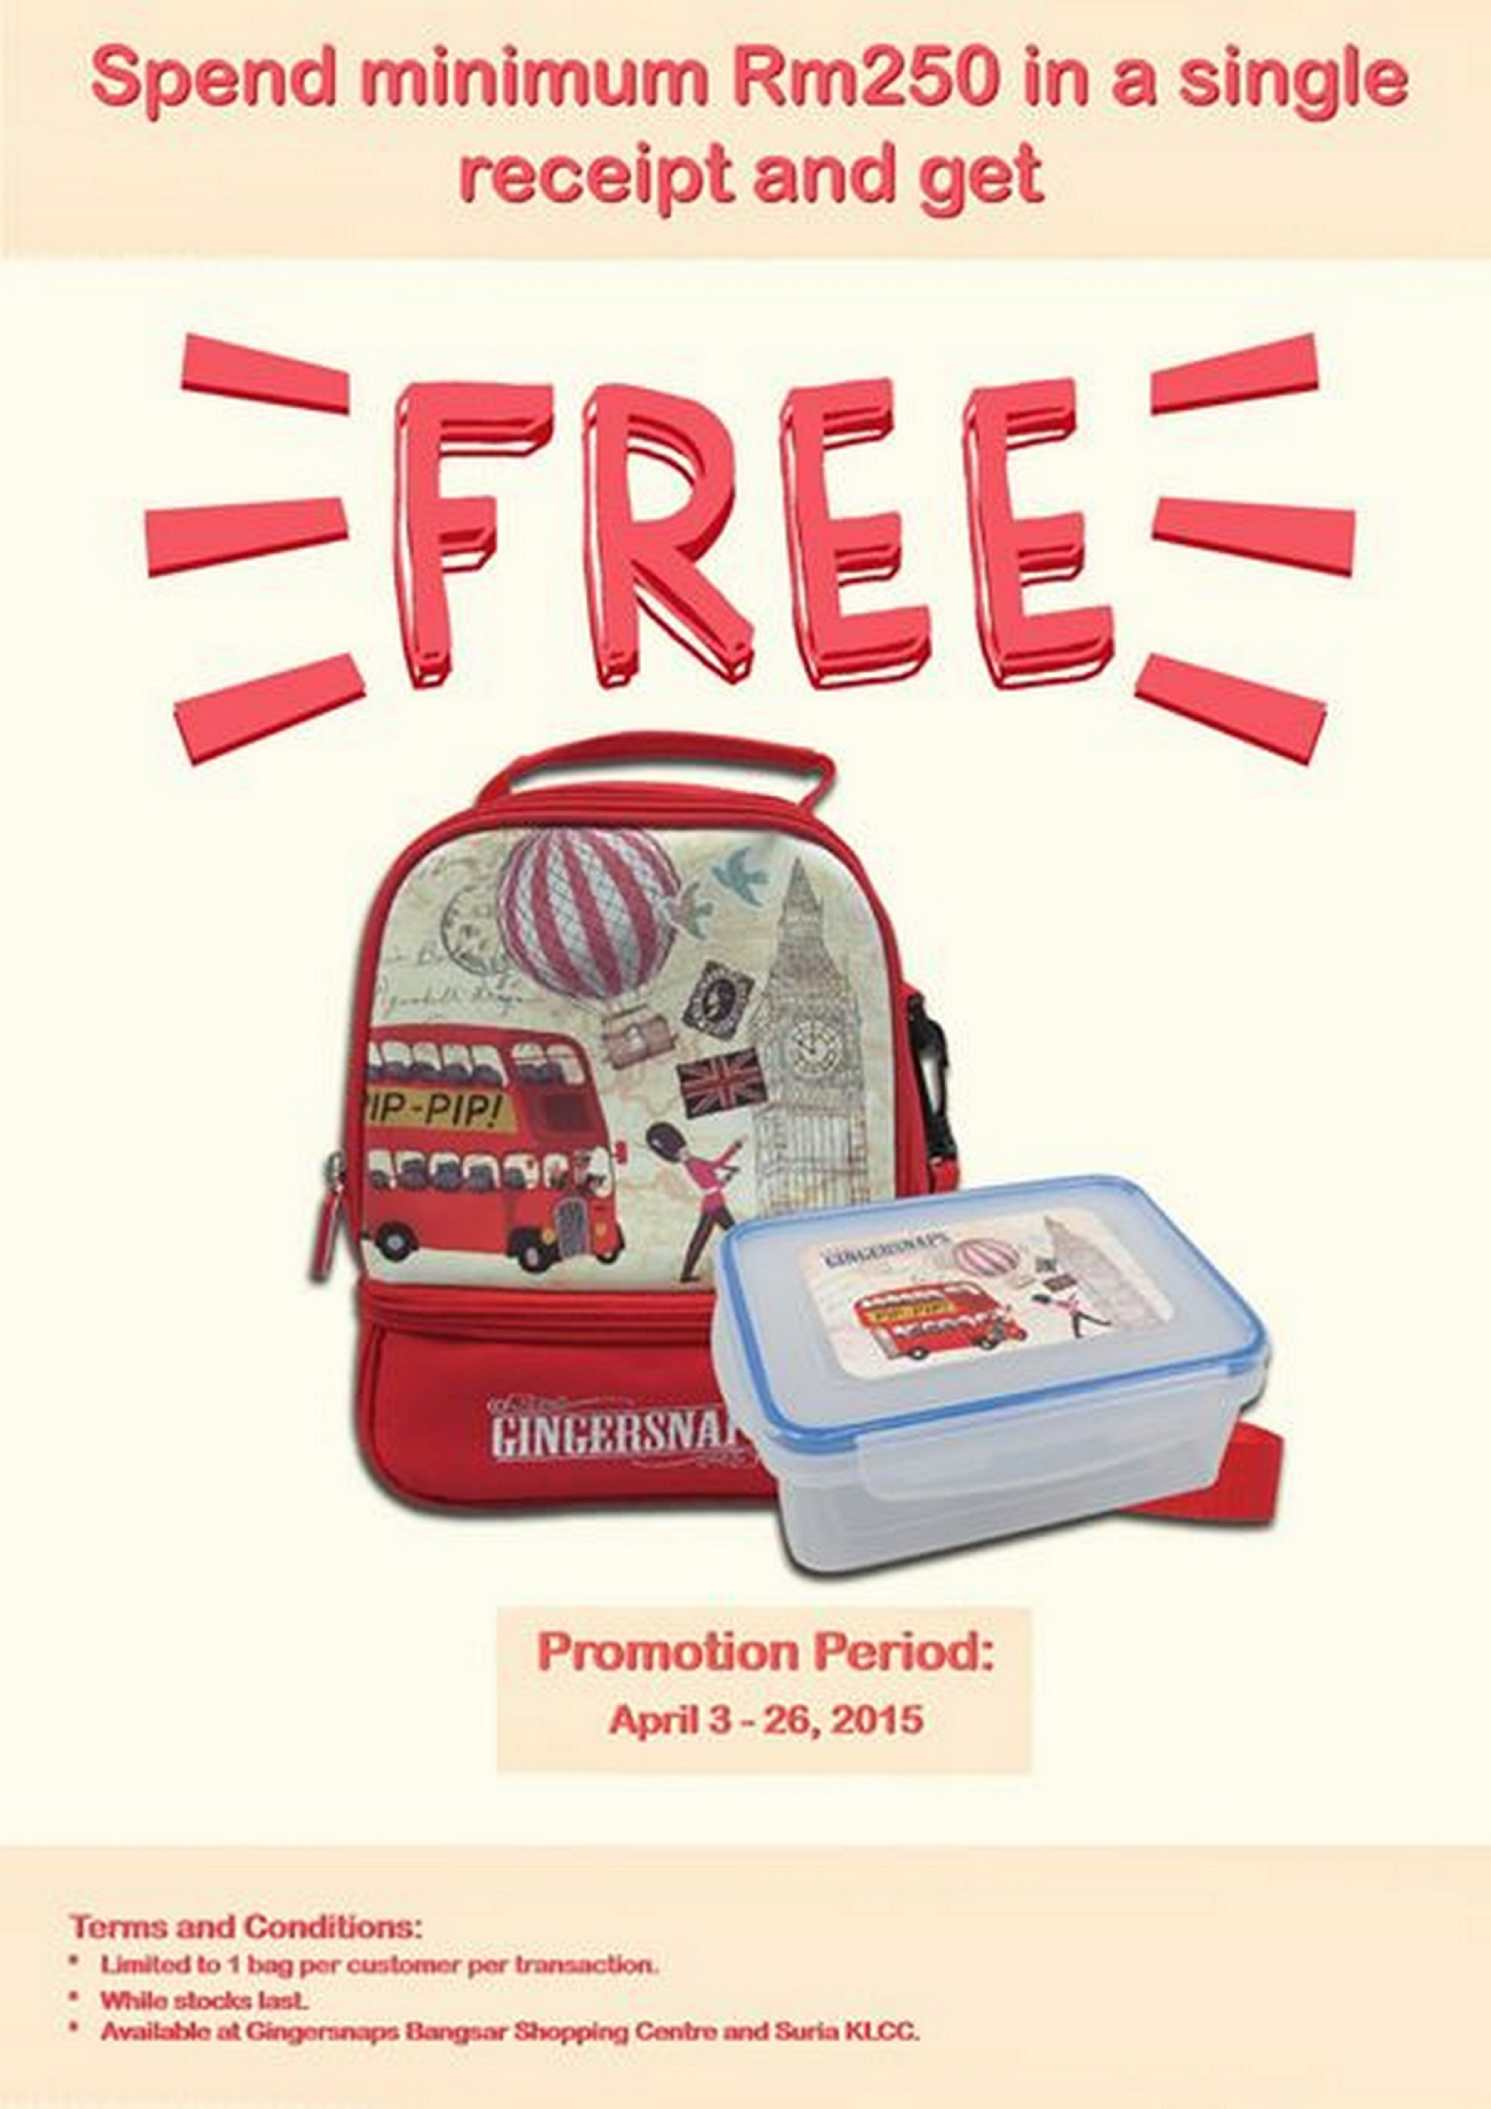 Calaméo - get-a-free-lunch-bag-with-minimum-purchase-of-rm250-at